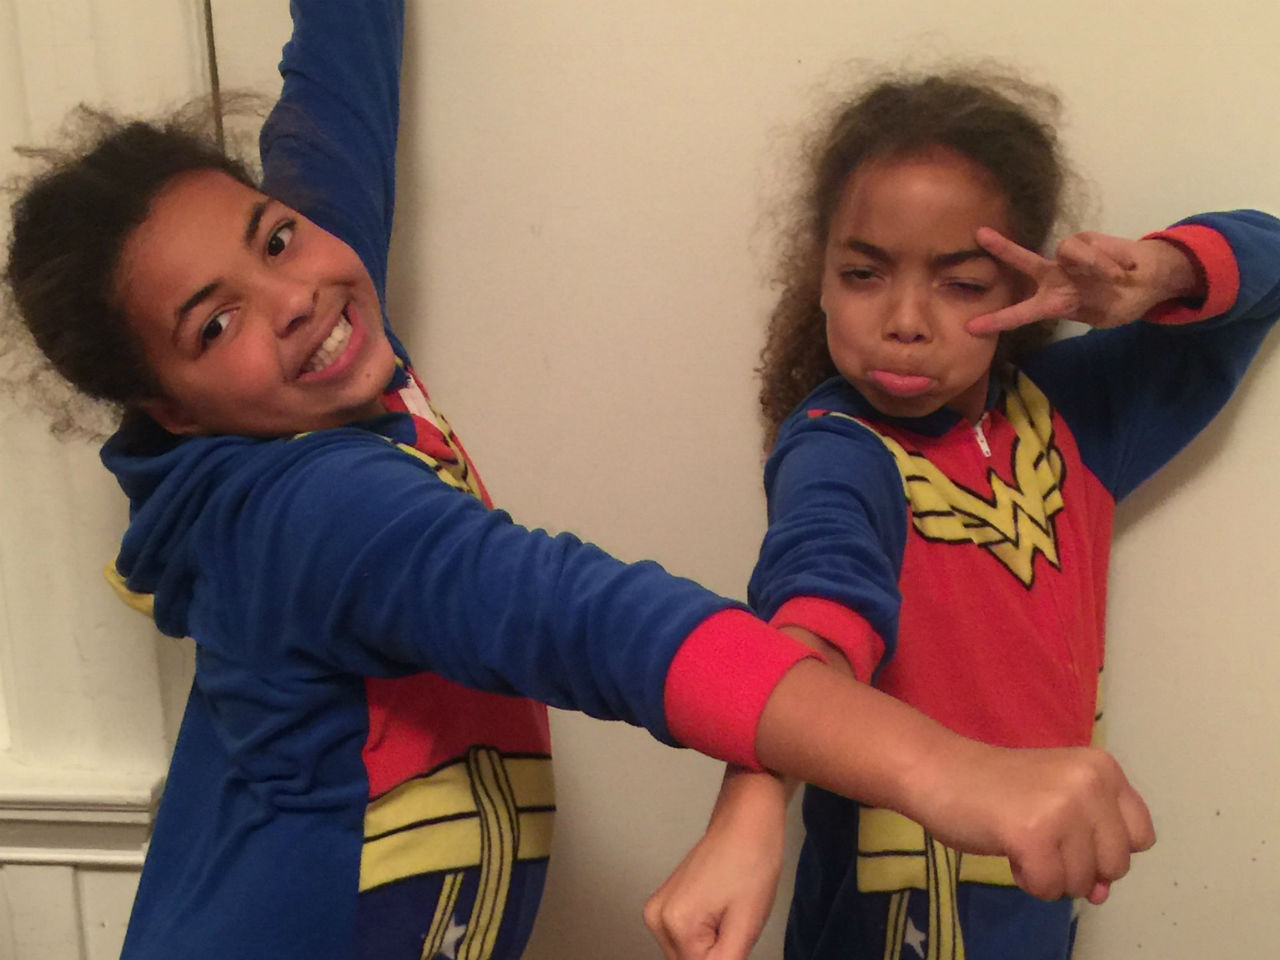 Nancy Netherland's two daughters with chronic illnesses wearing superhero pyjamas